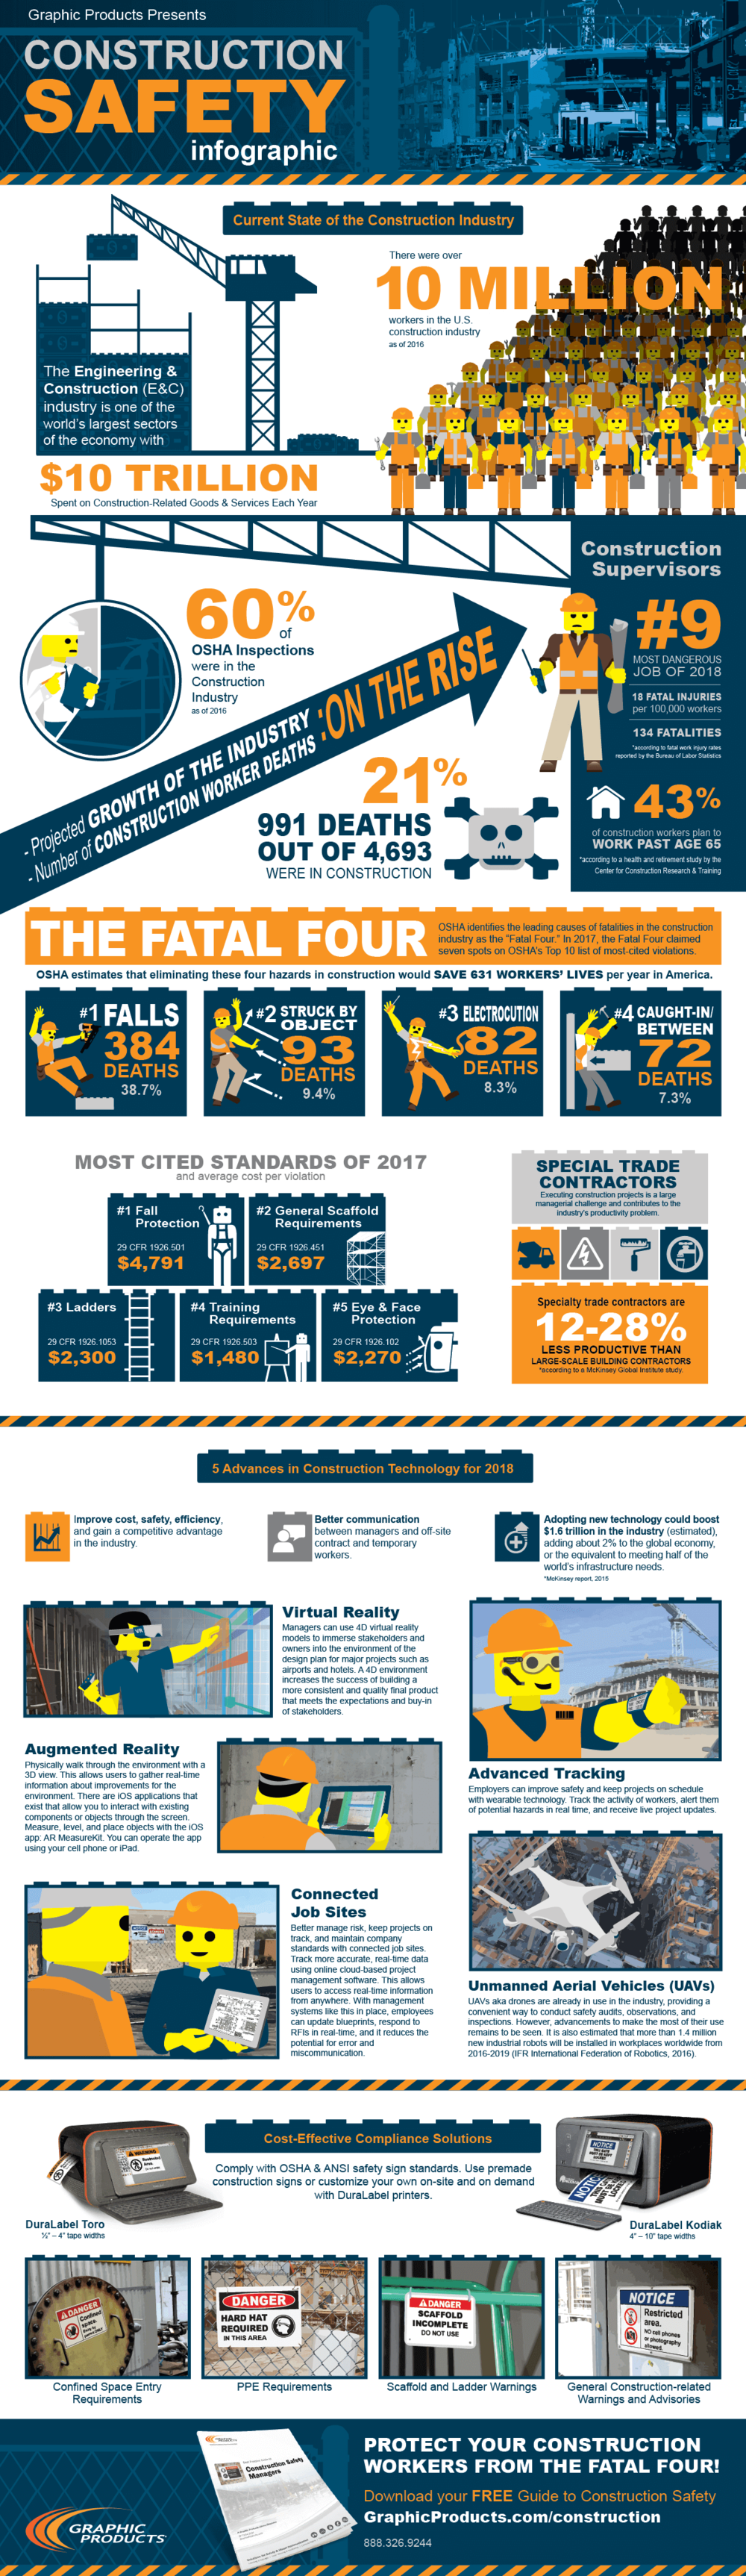 contruction-safety-infographic-final.png